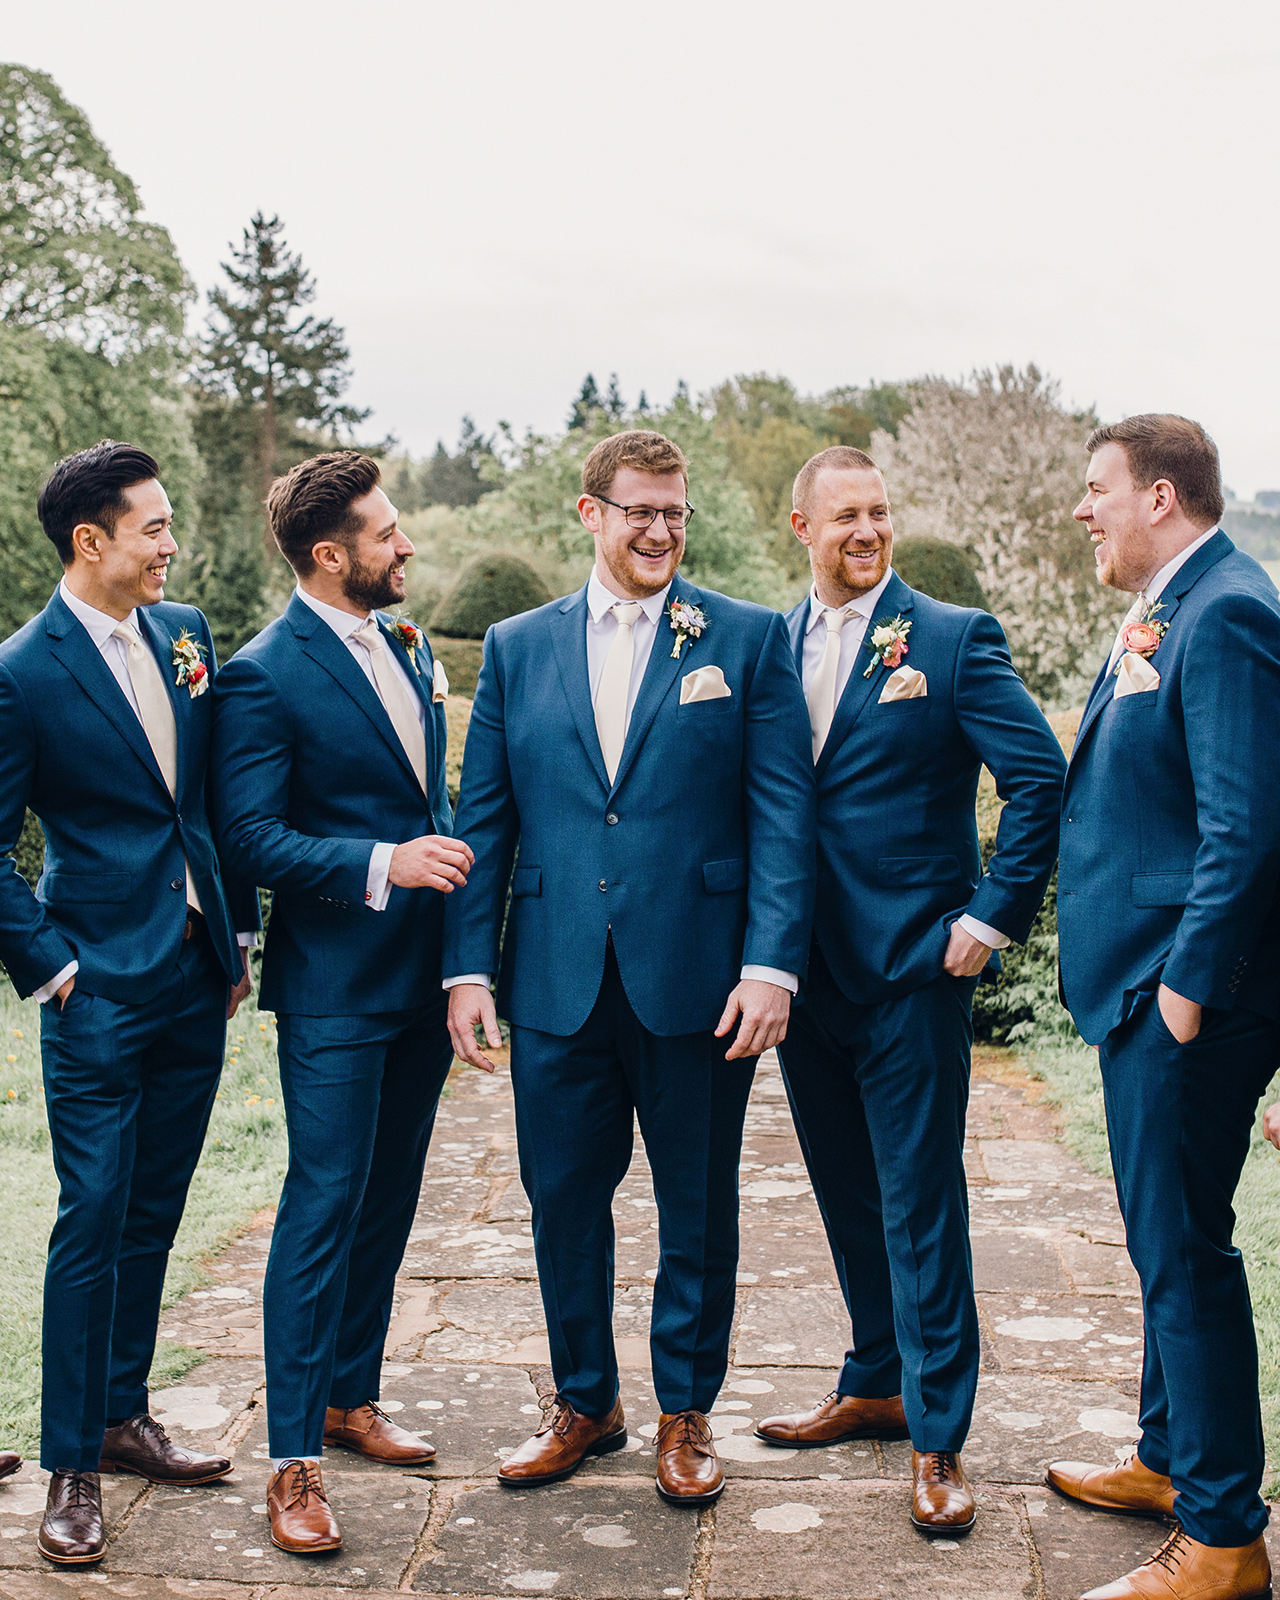 groom with groomsmen in navy blue attire outdoors